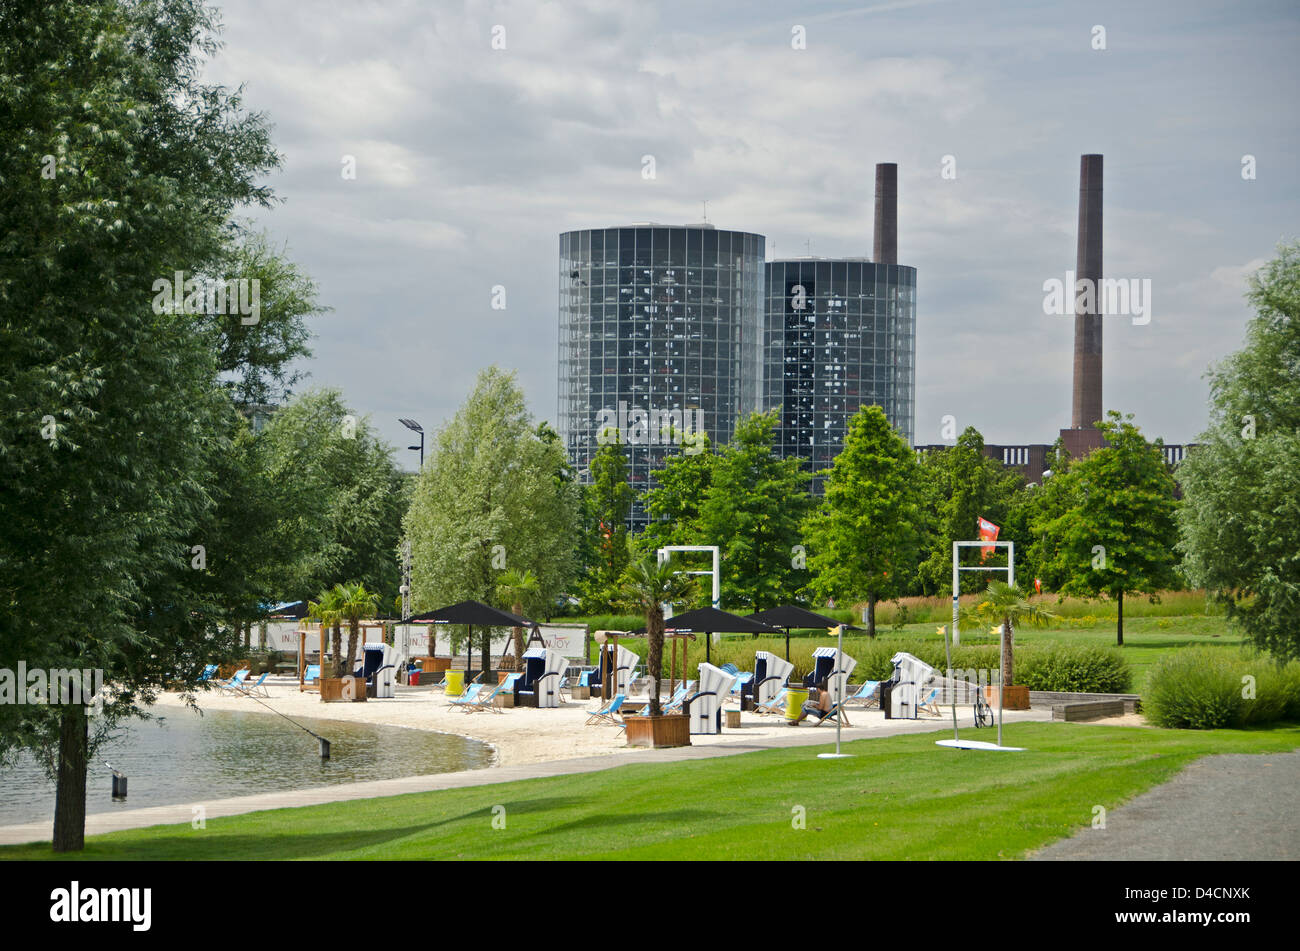 Car towers and park area with beach, Lower Saxony, Germany - Stock Image